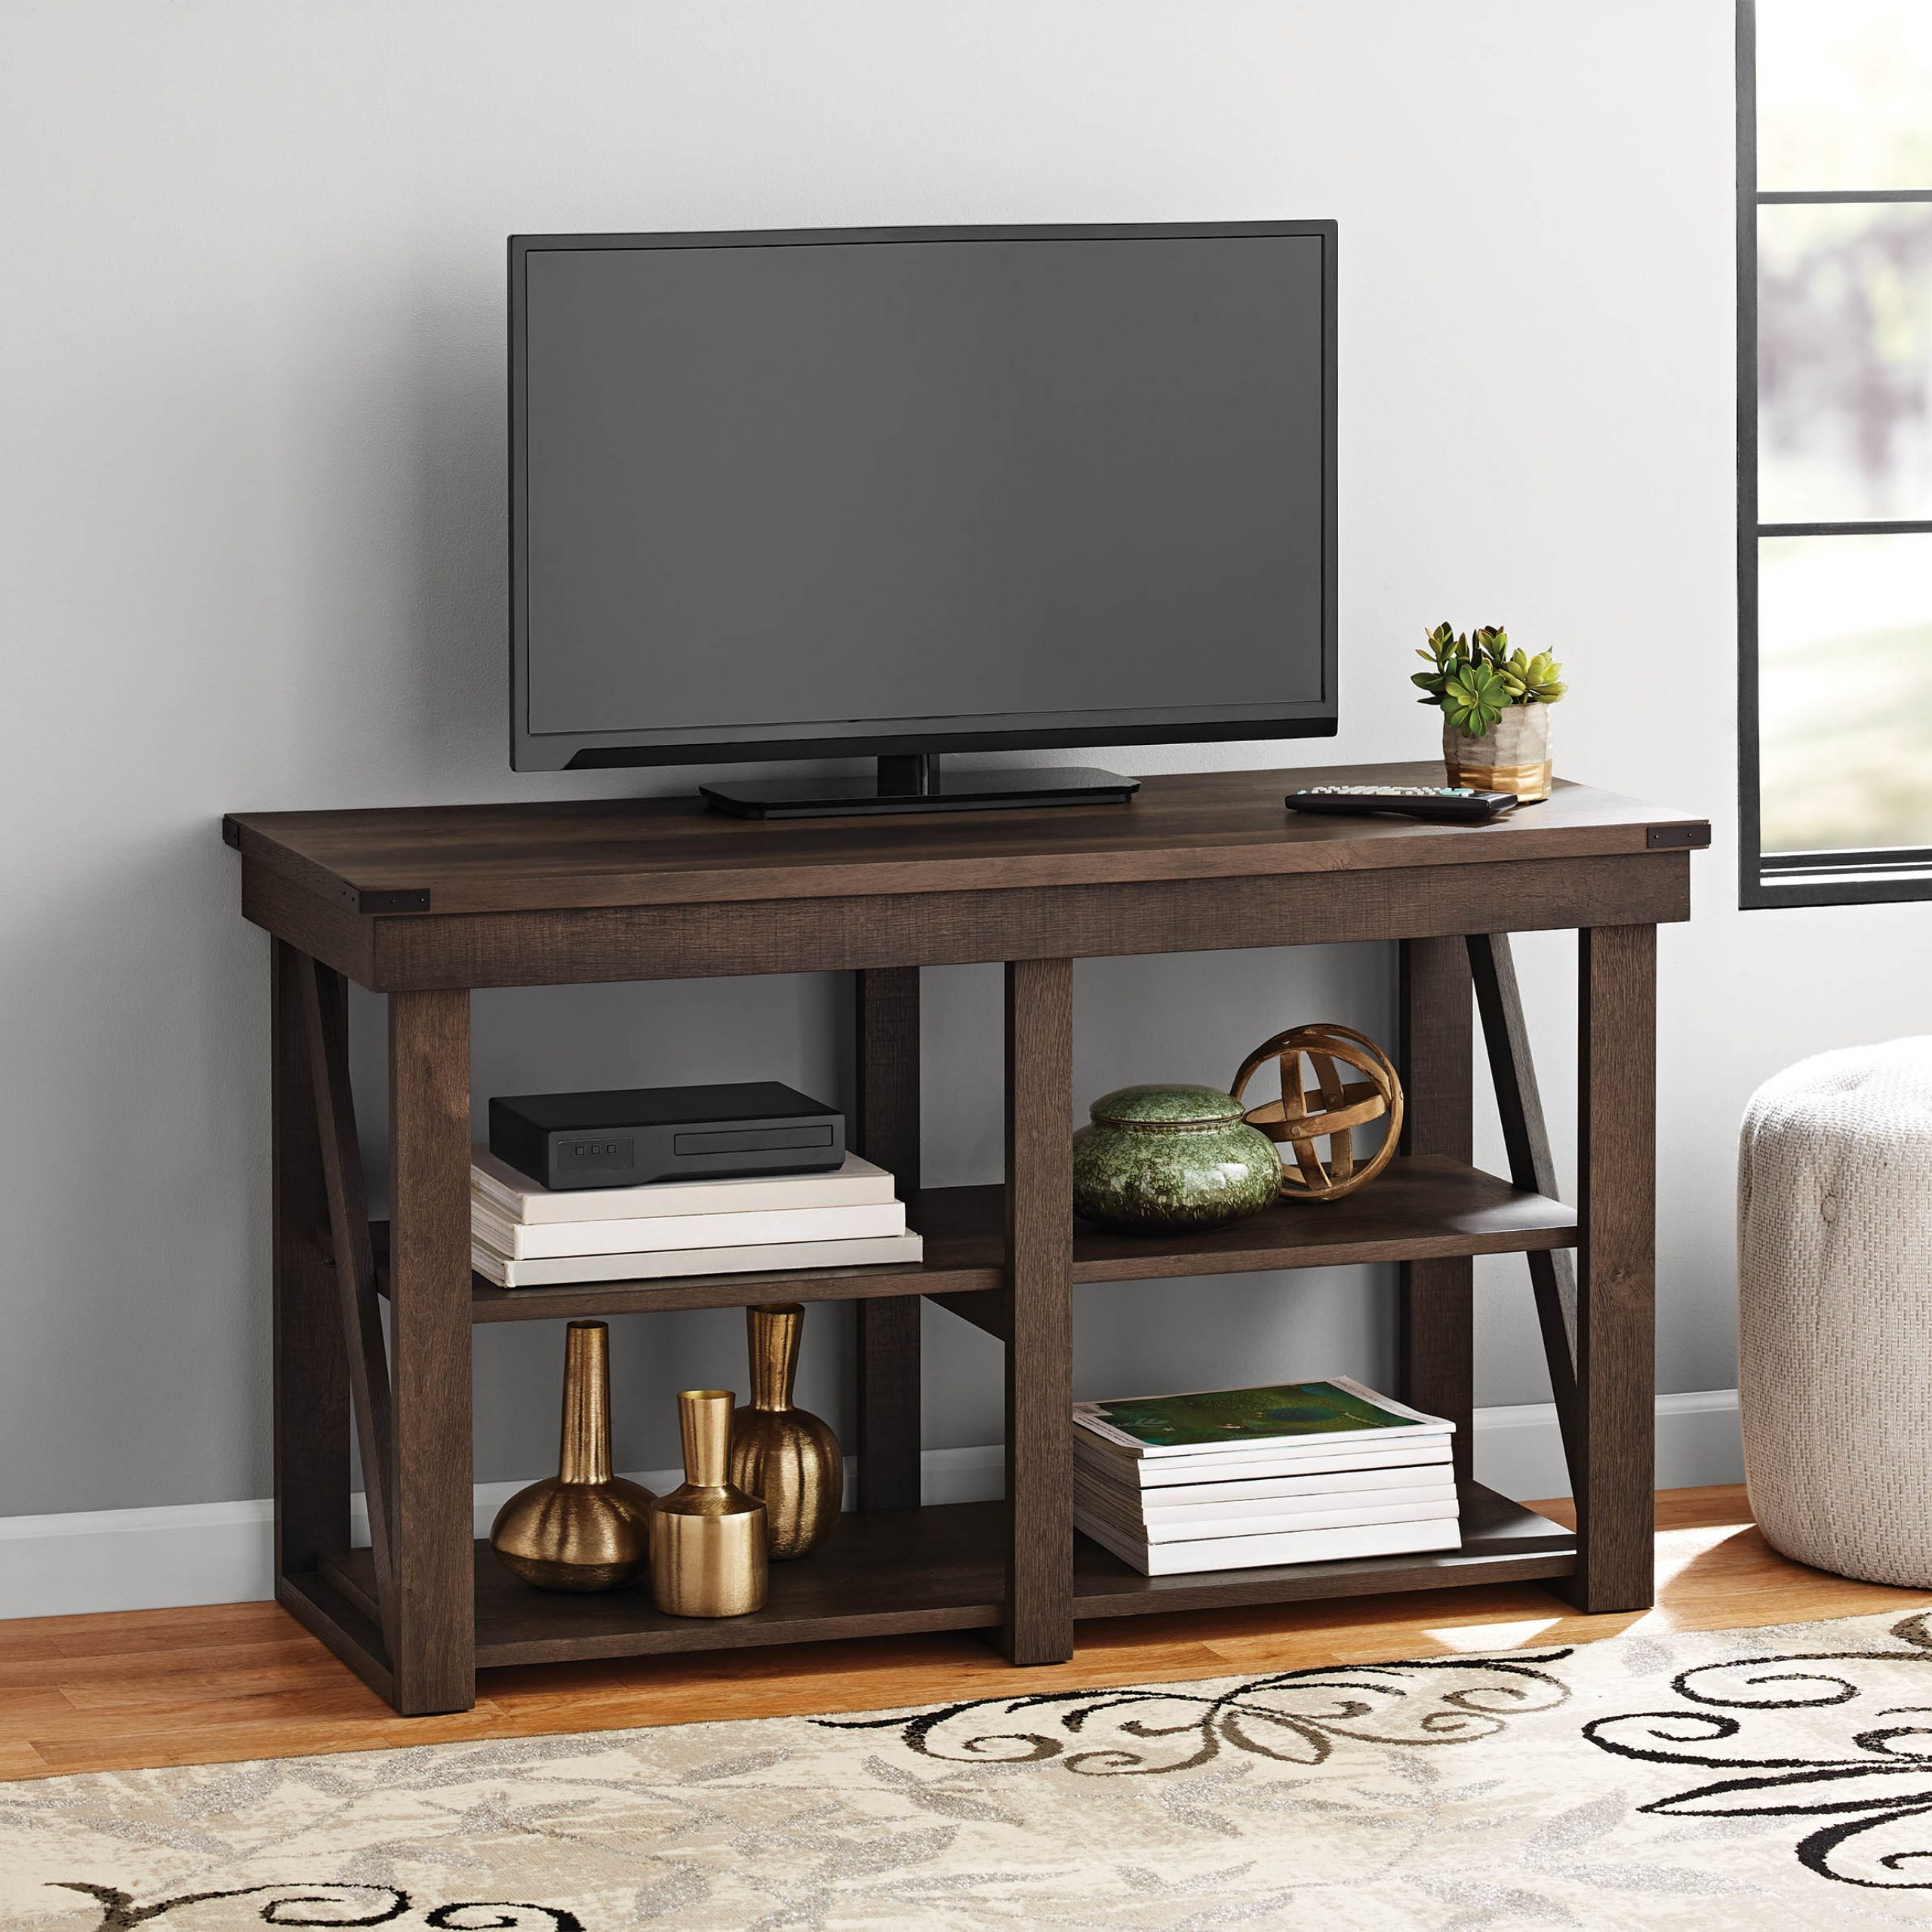 Flat Screen Tv Stand At Walmart — Shermanscreek Regarding Whalen Shelf Tv Stands With Floater Mount In Weathered Dark Pine Finish (View 3 of 20)